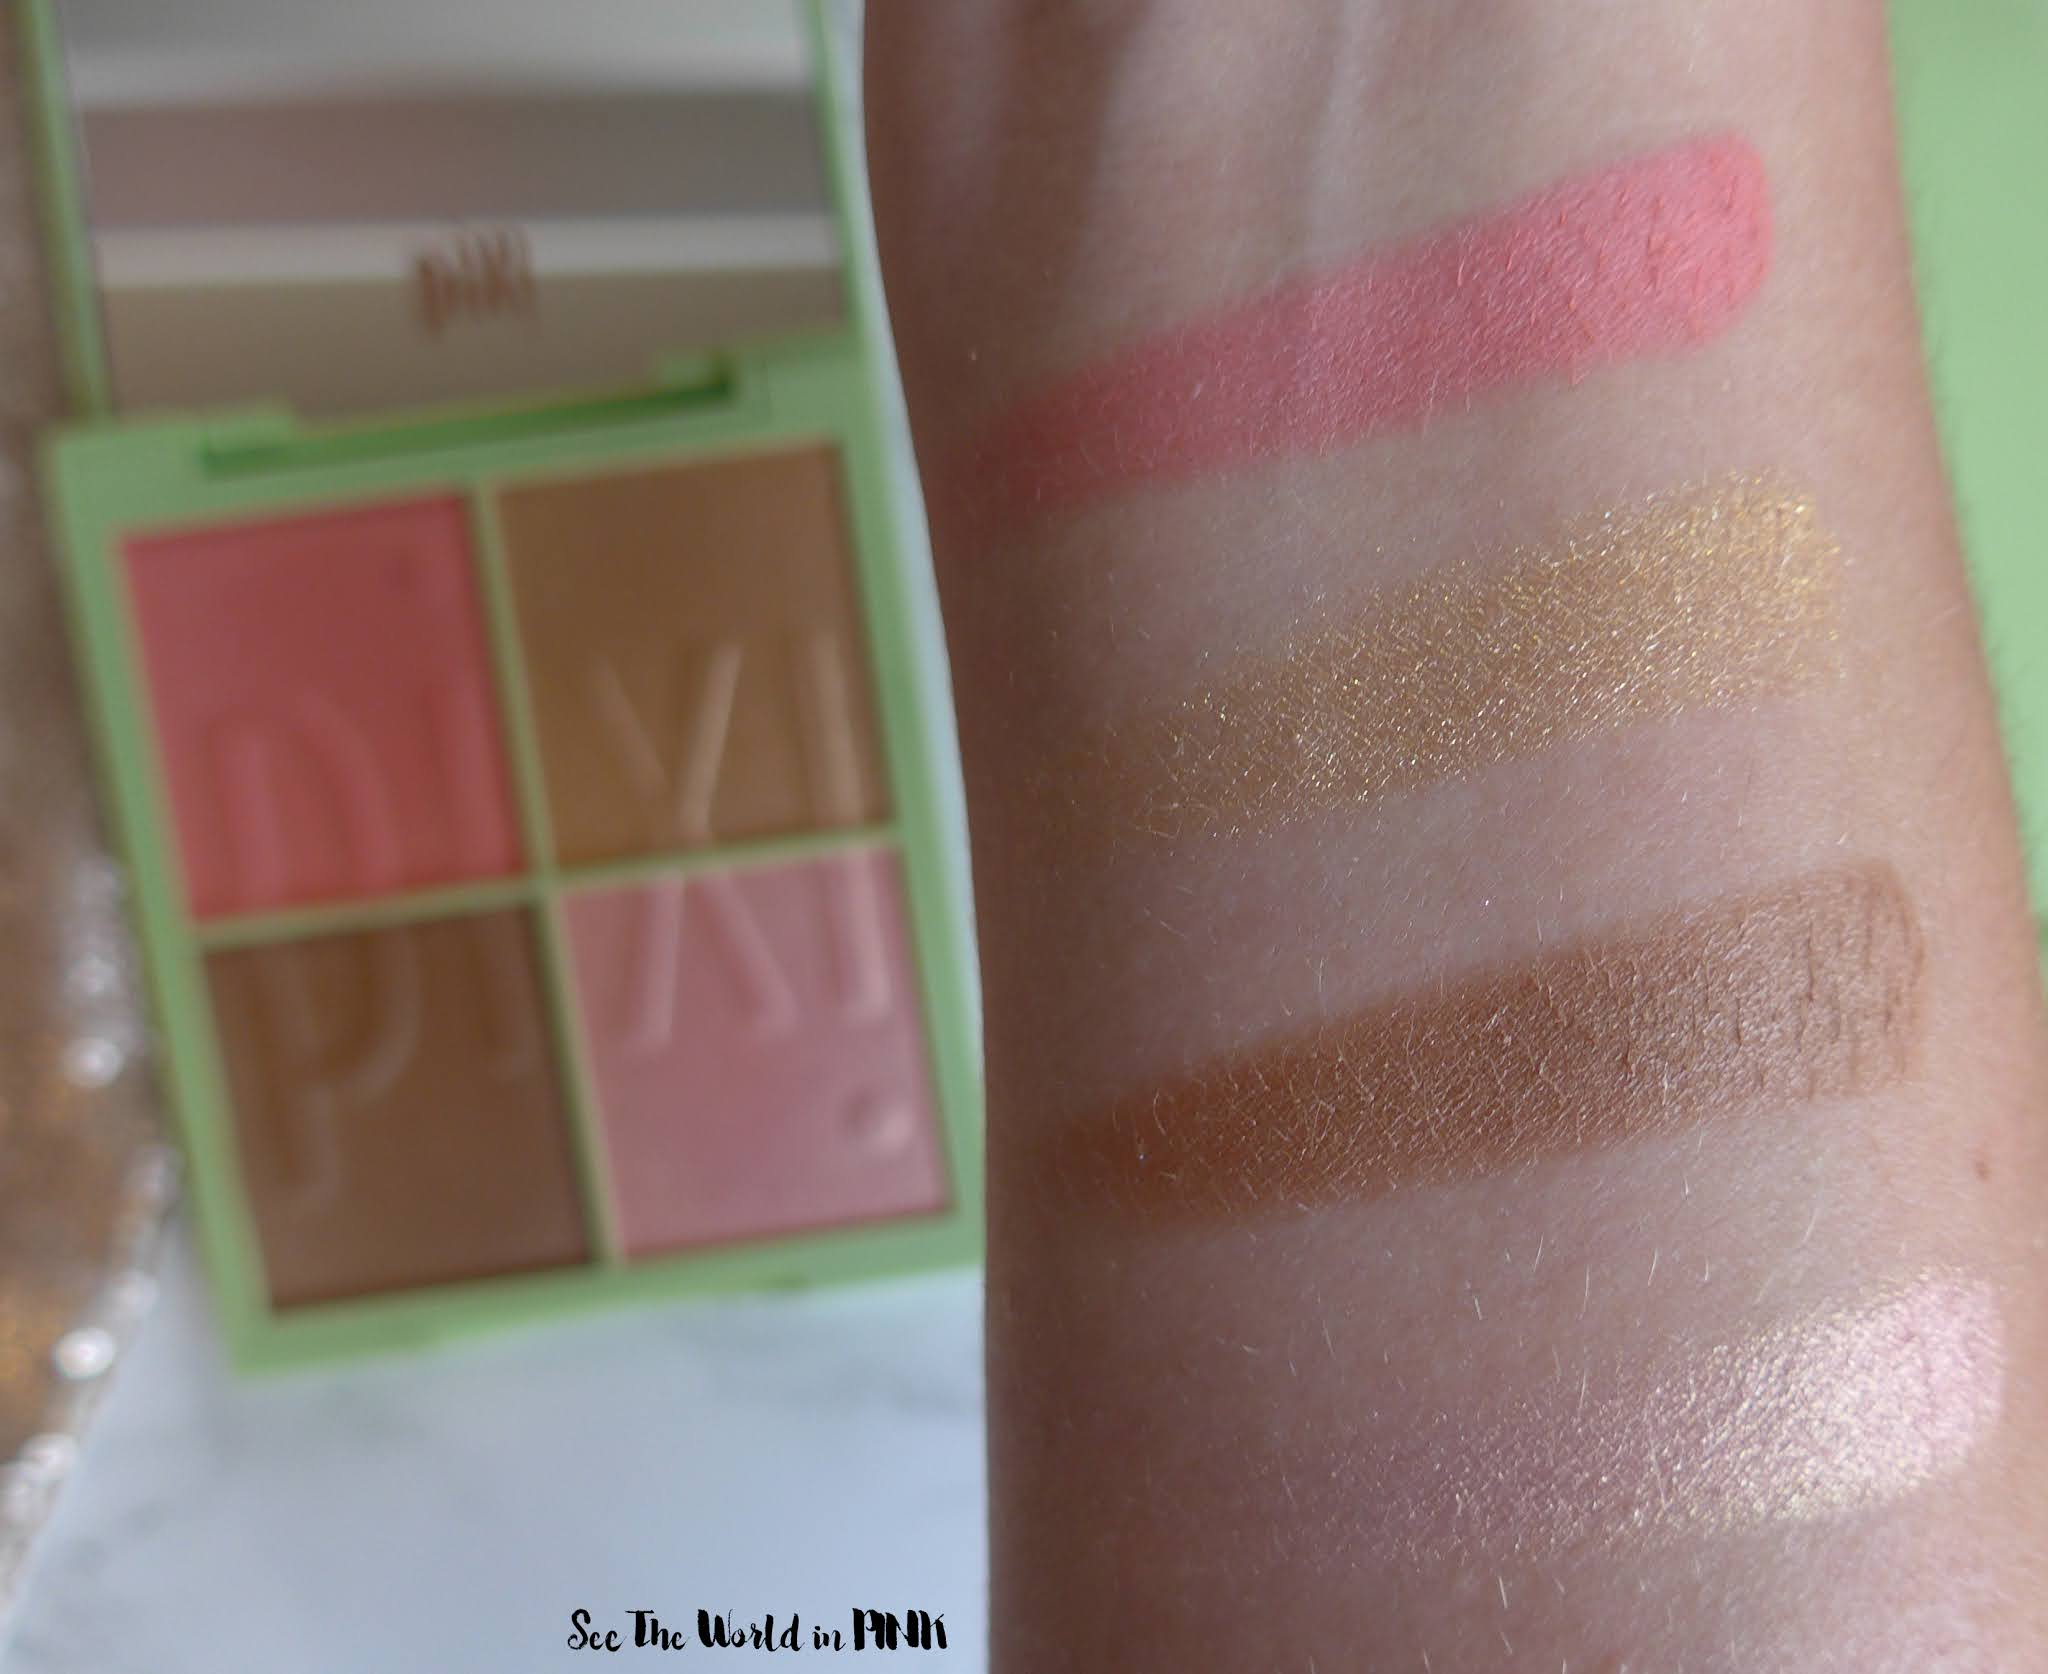 Pixi Beauty Eye Effects Shadow Palettes & Nuance Quartettes - Swatches, Try-ons & Thoughts